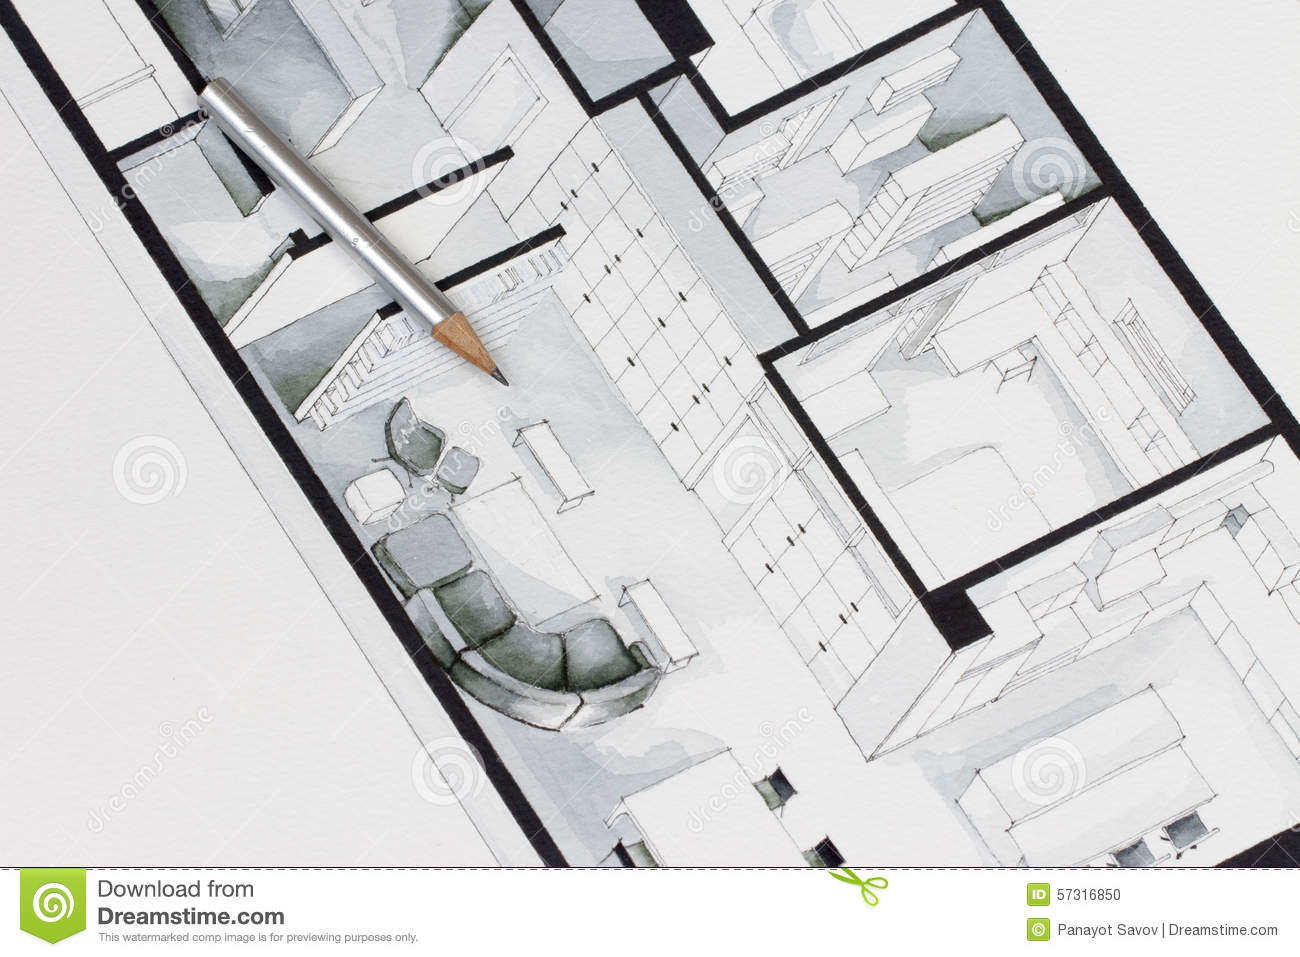 Architecture Drawing Lessons architectural drawing of apartment stock illustration - image